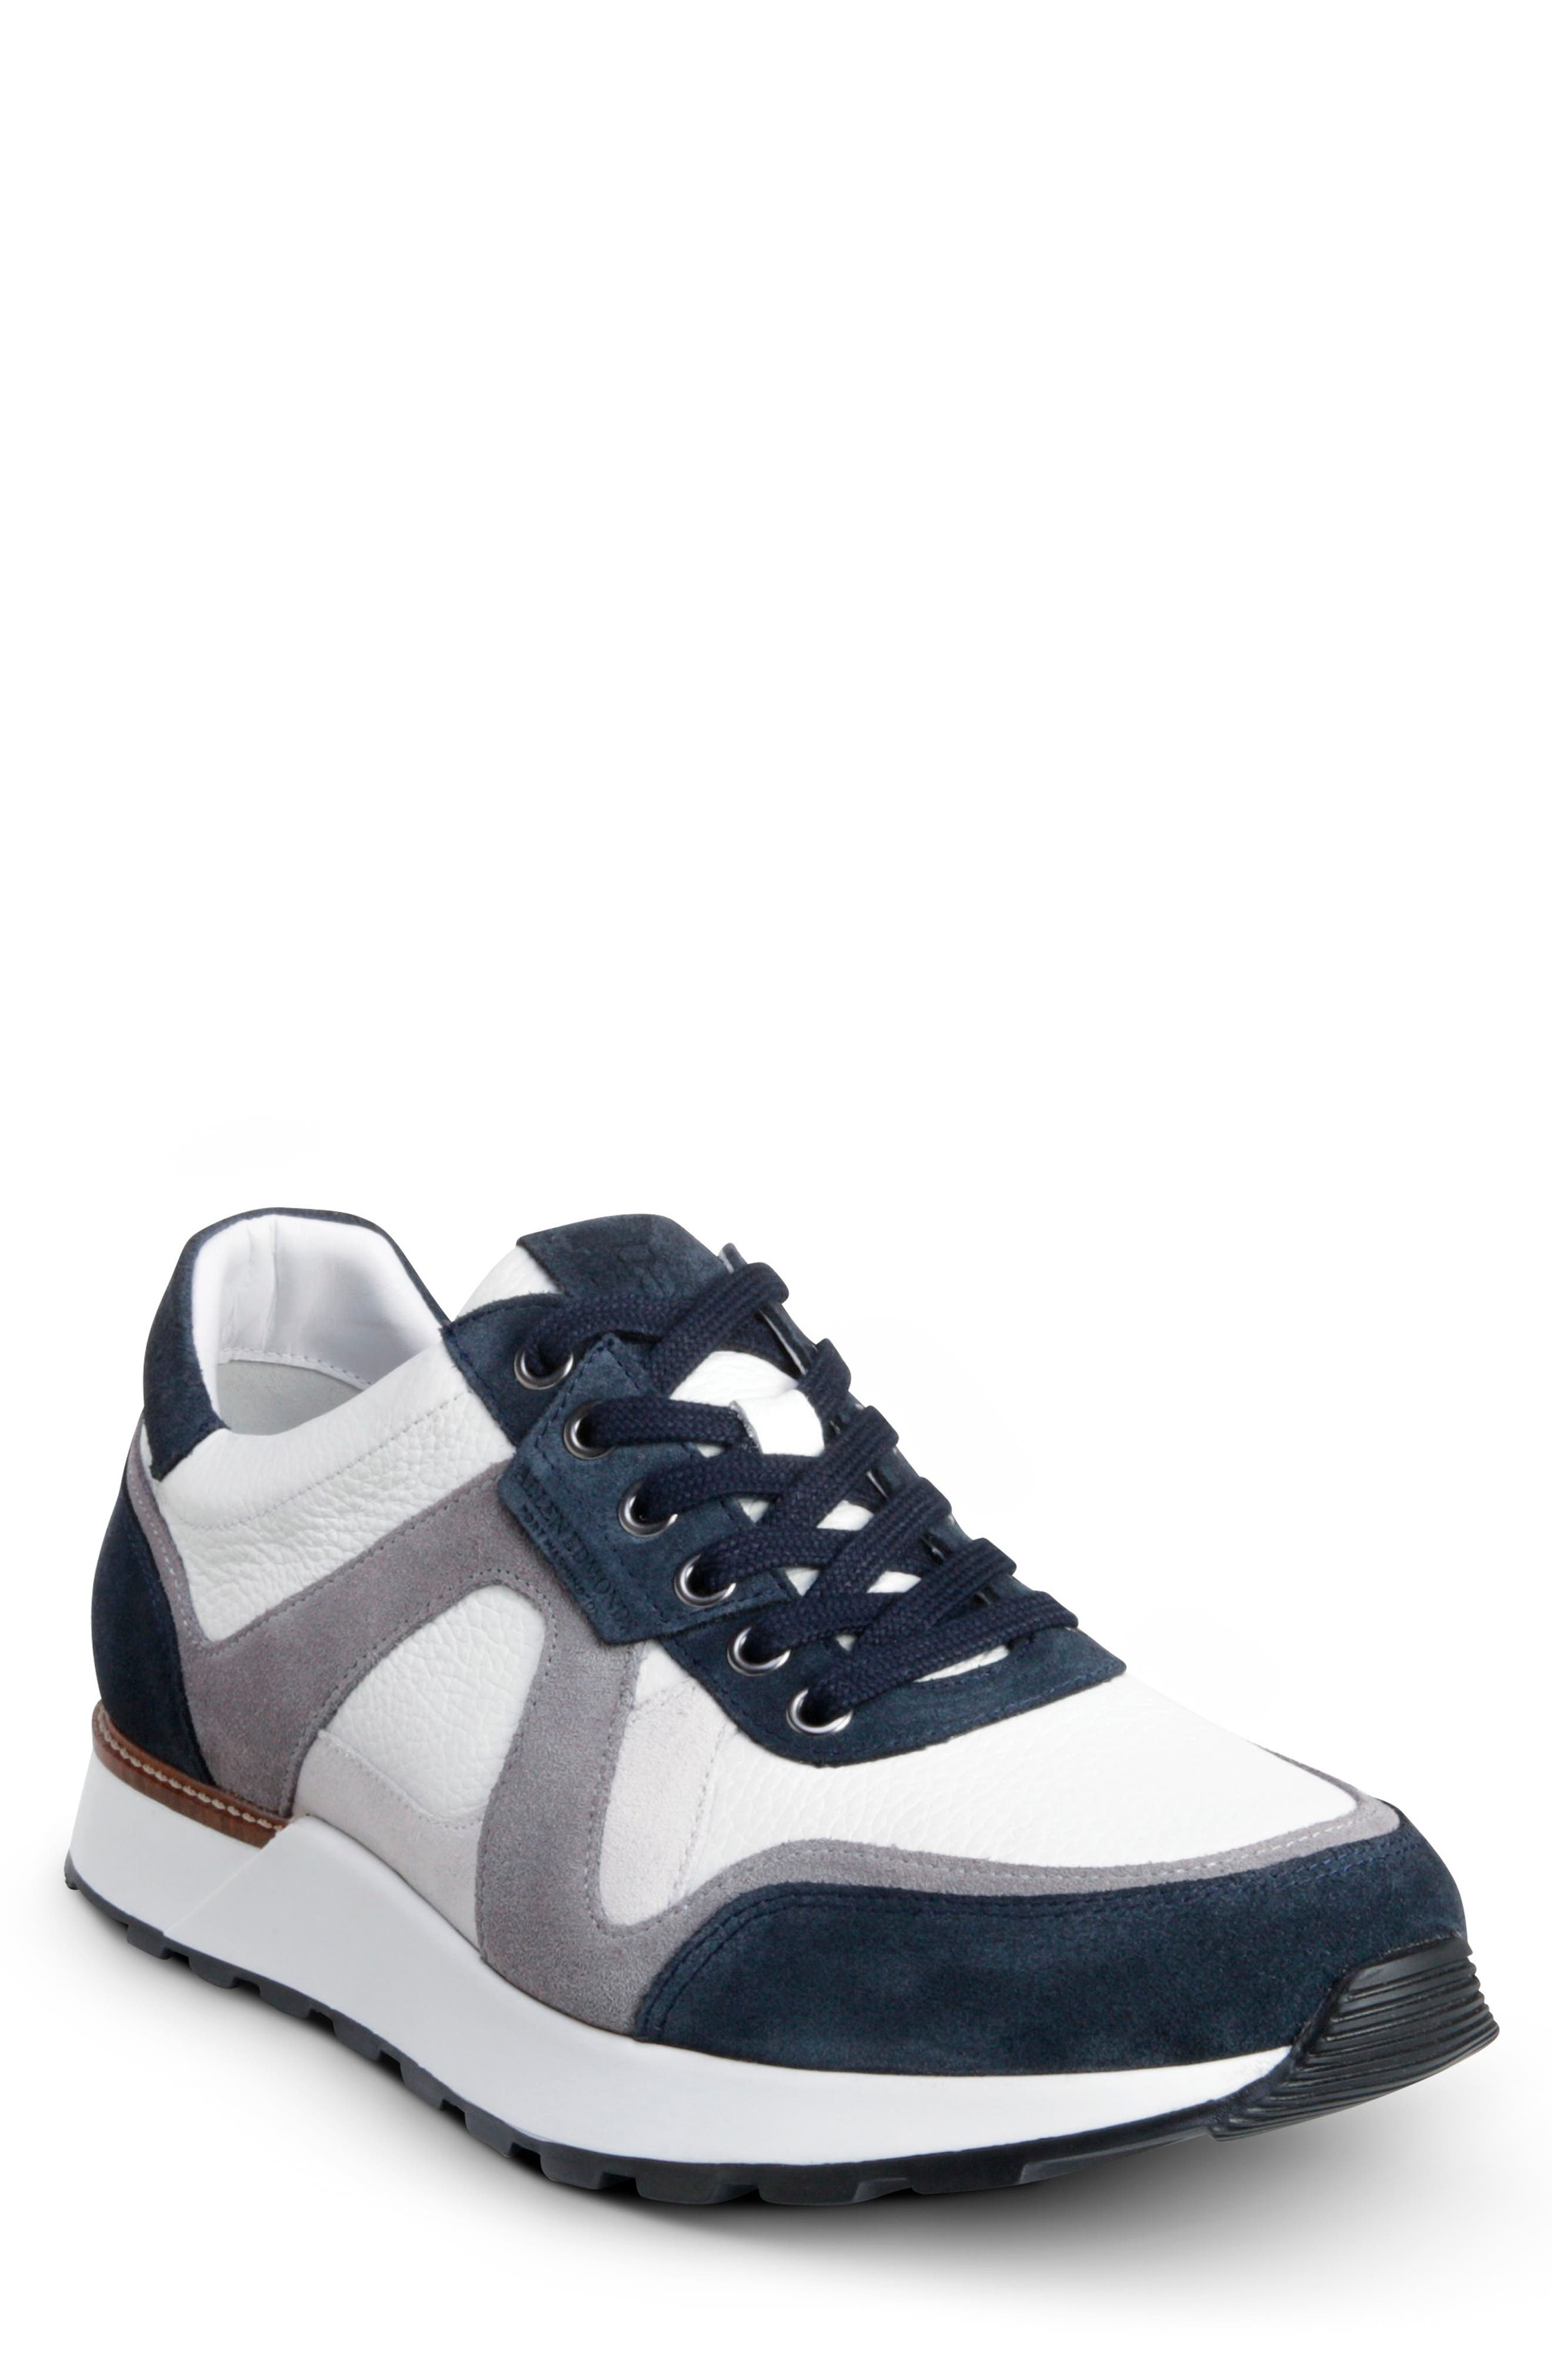 Image of Allen Edmonds A-Trainer Sneaker